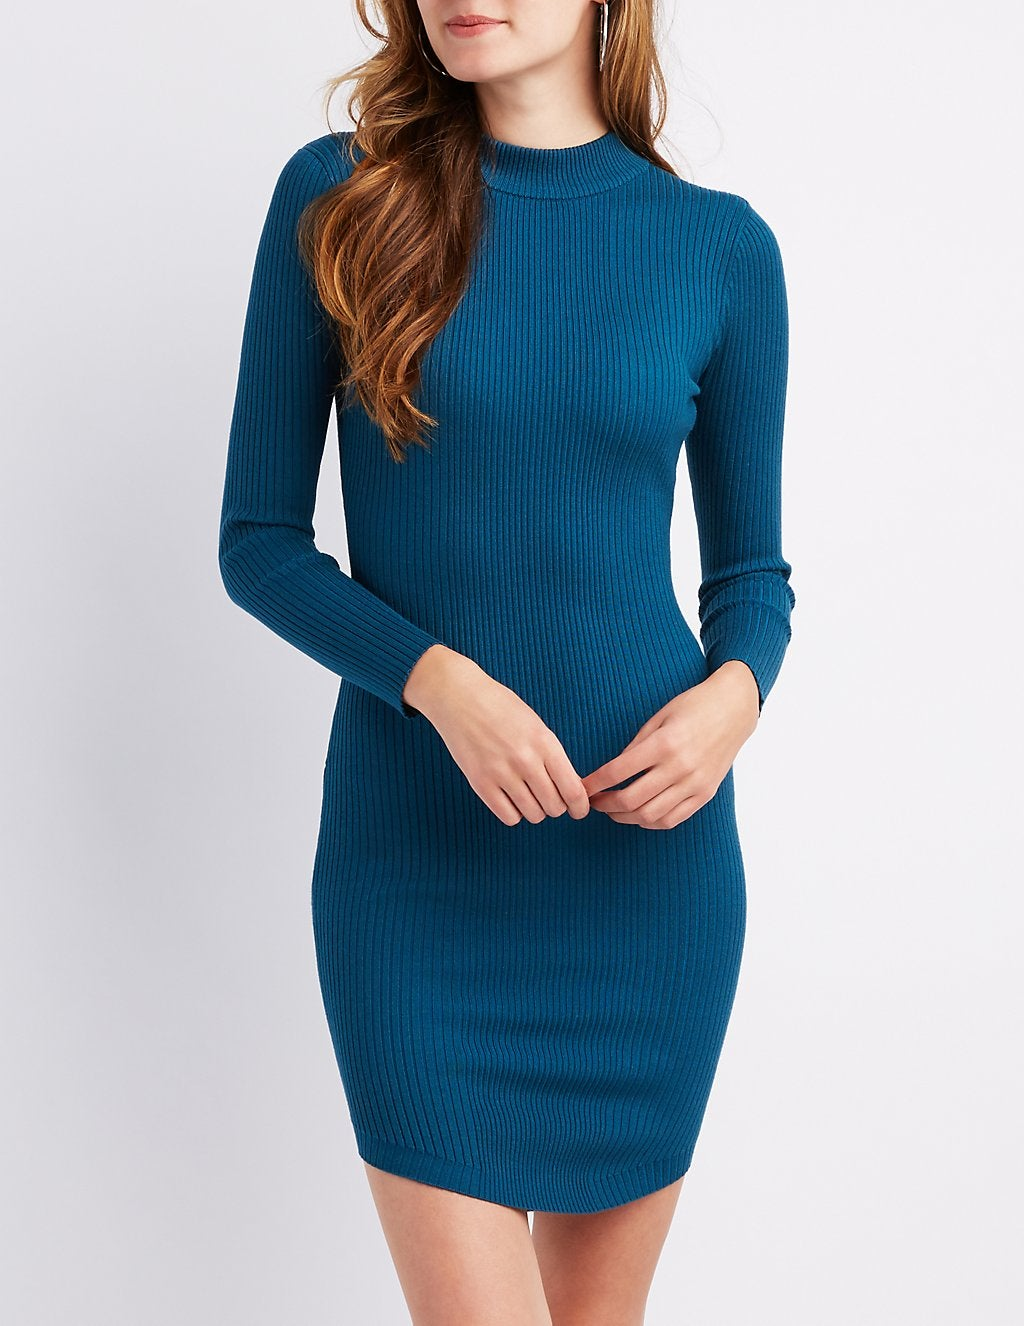 dcee7a7bc936 promoted. Charlotte Russe. Ribbed Mock Neck Bodycon Dress